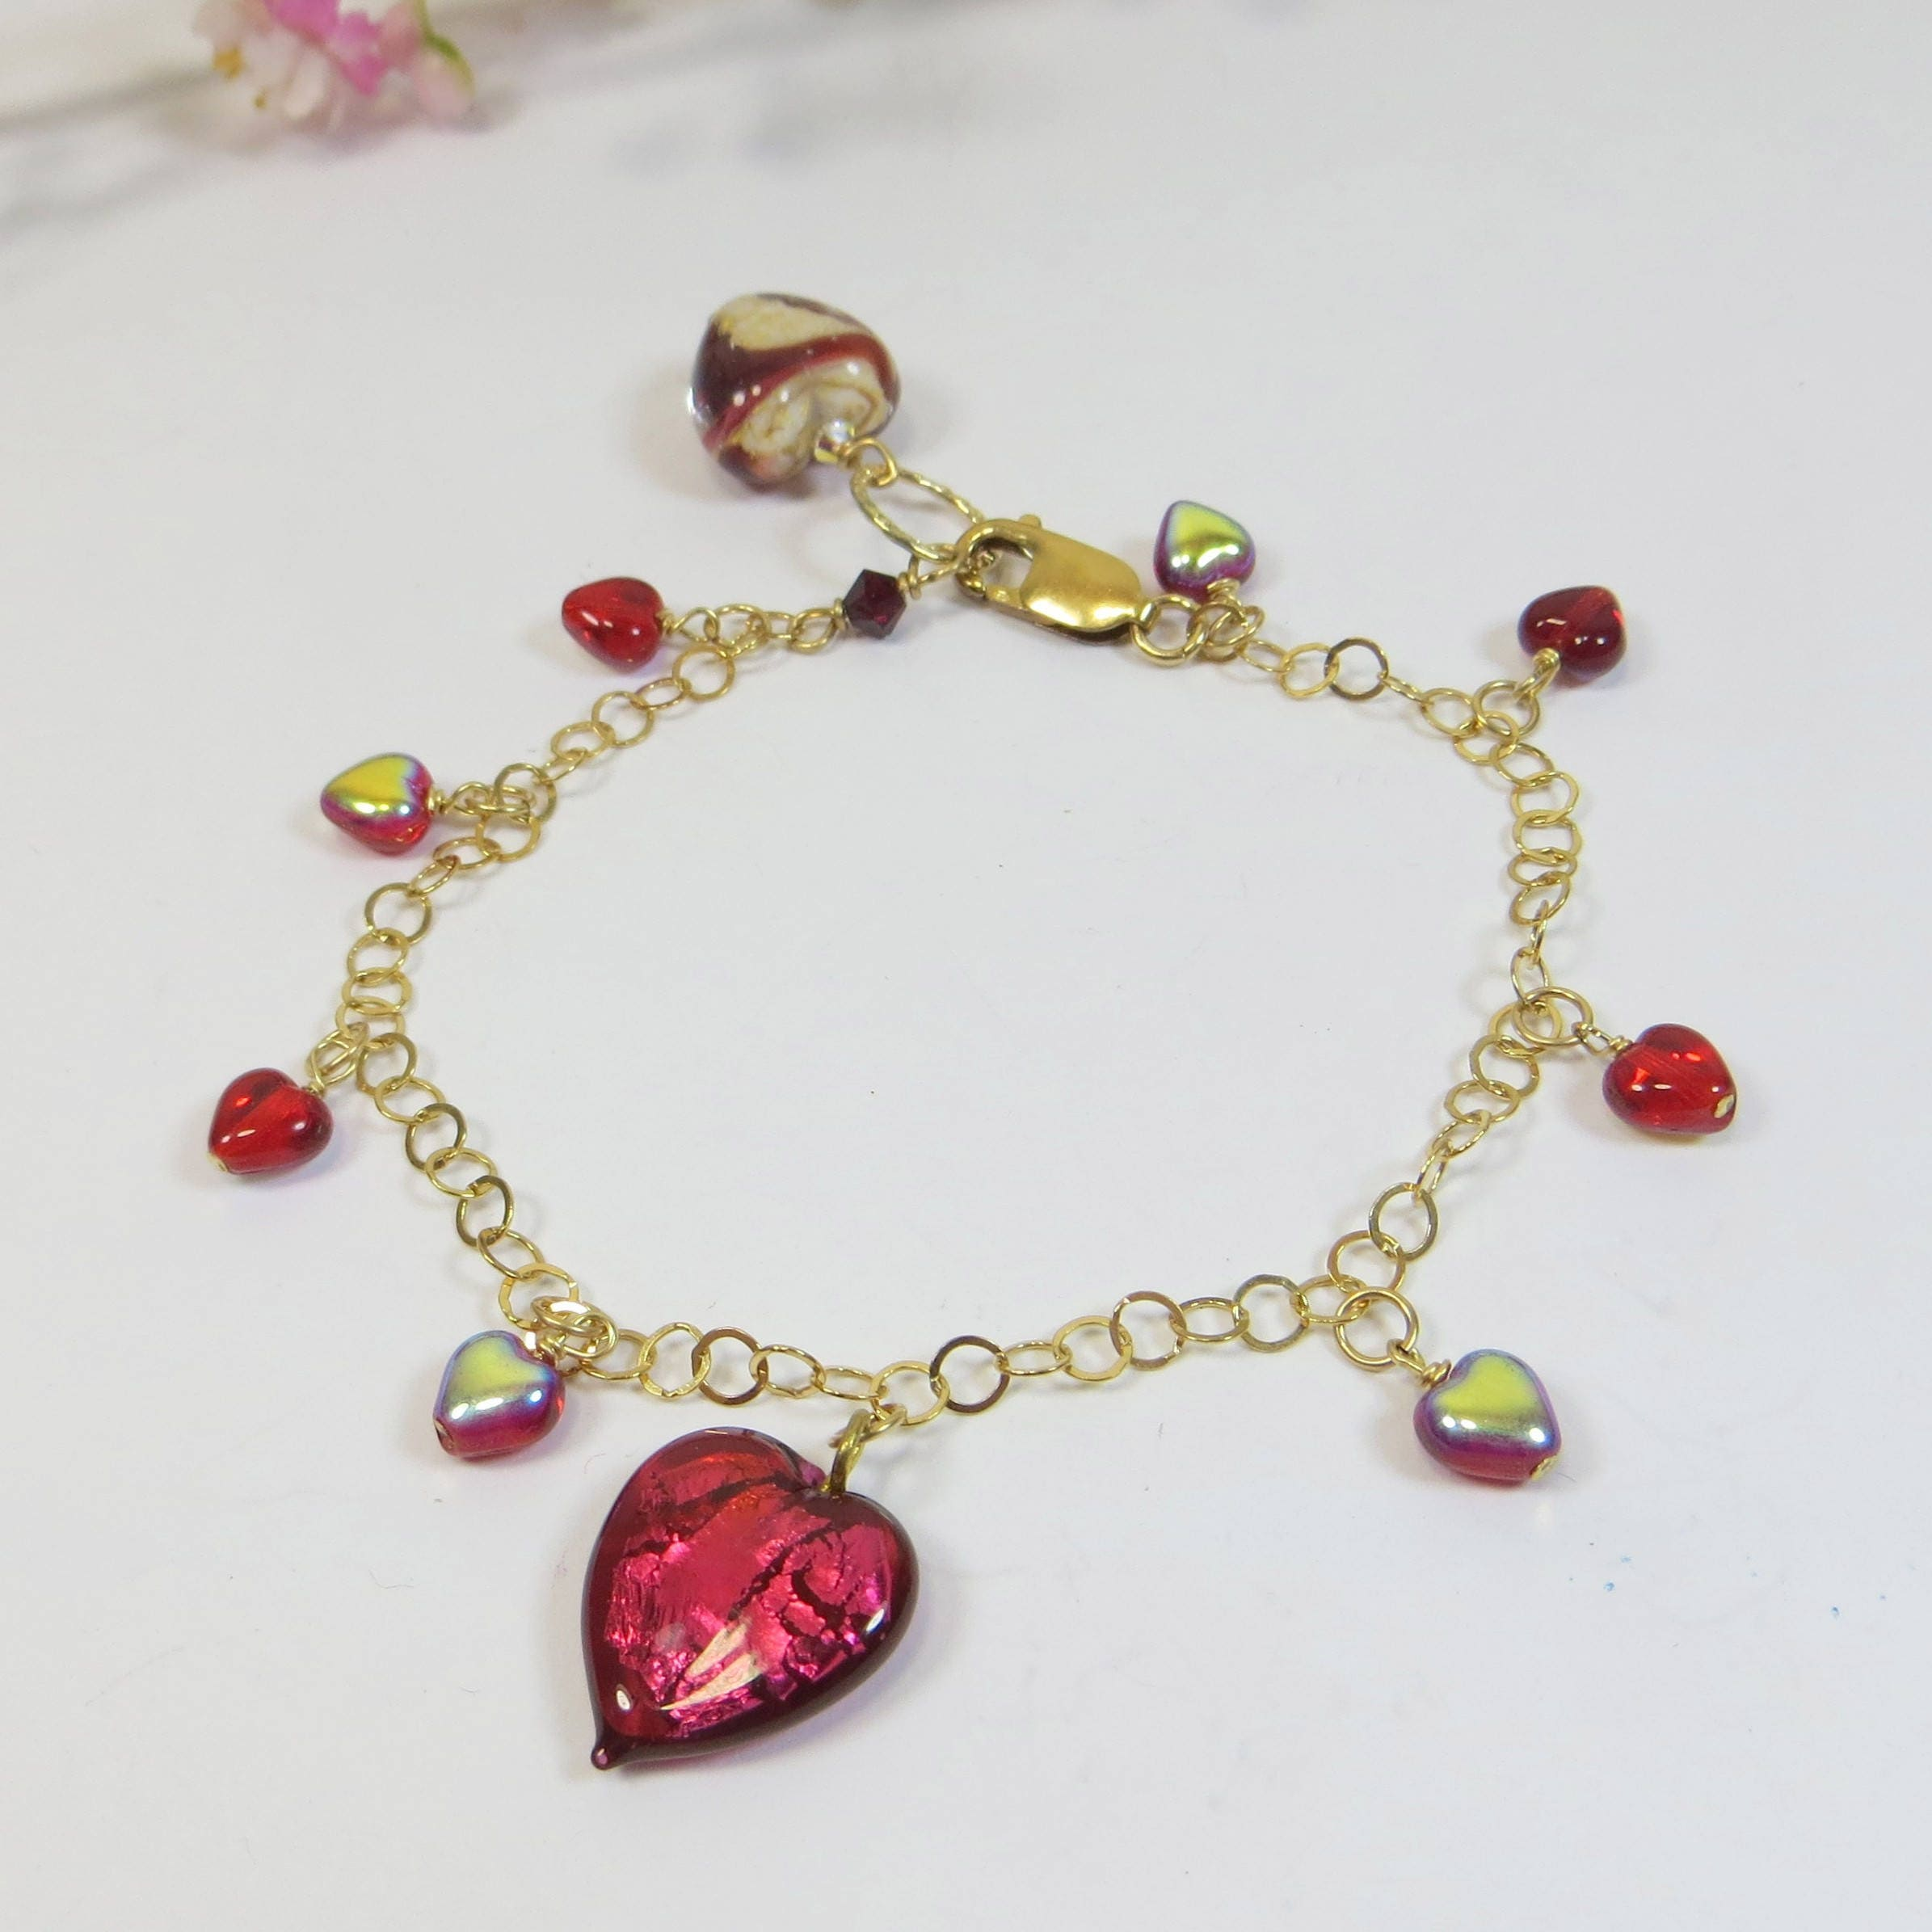 bracelet jewellery pink heart in trendy fashionable accessories memory treat tiny silver cookie